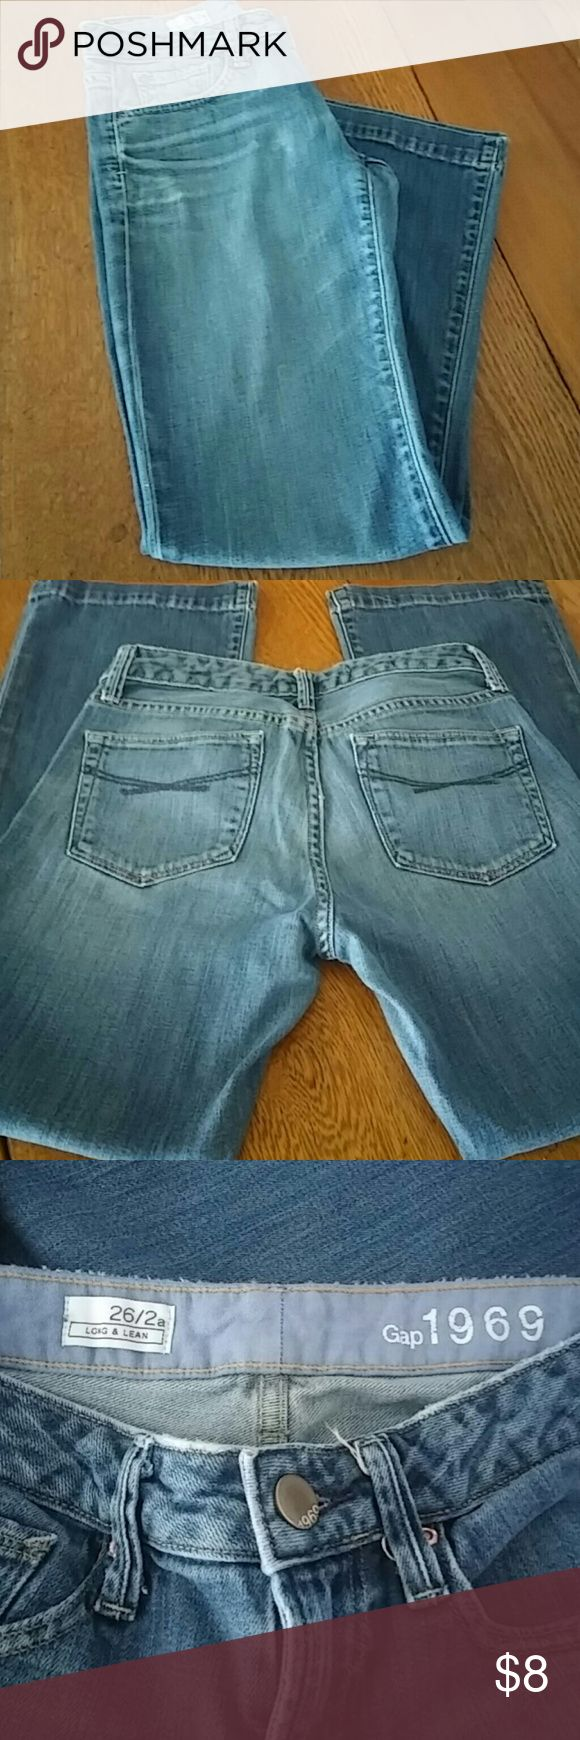 "Gap 1969 Jeans Gap 26/2a Long and Lean Jeans. Gap 1969. Gently used. 27"" inseam GAP Jeans Boot Cut"